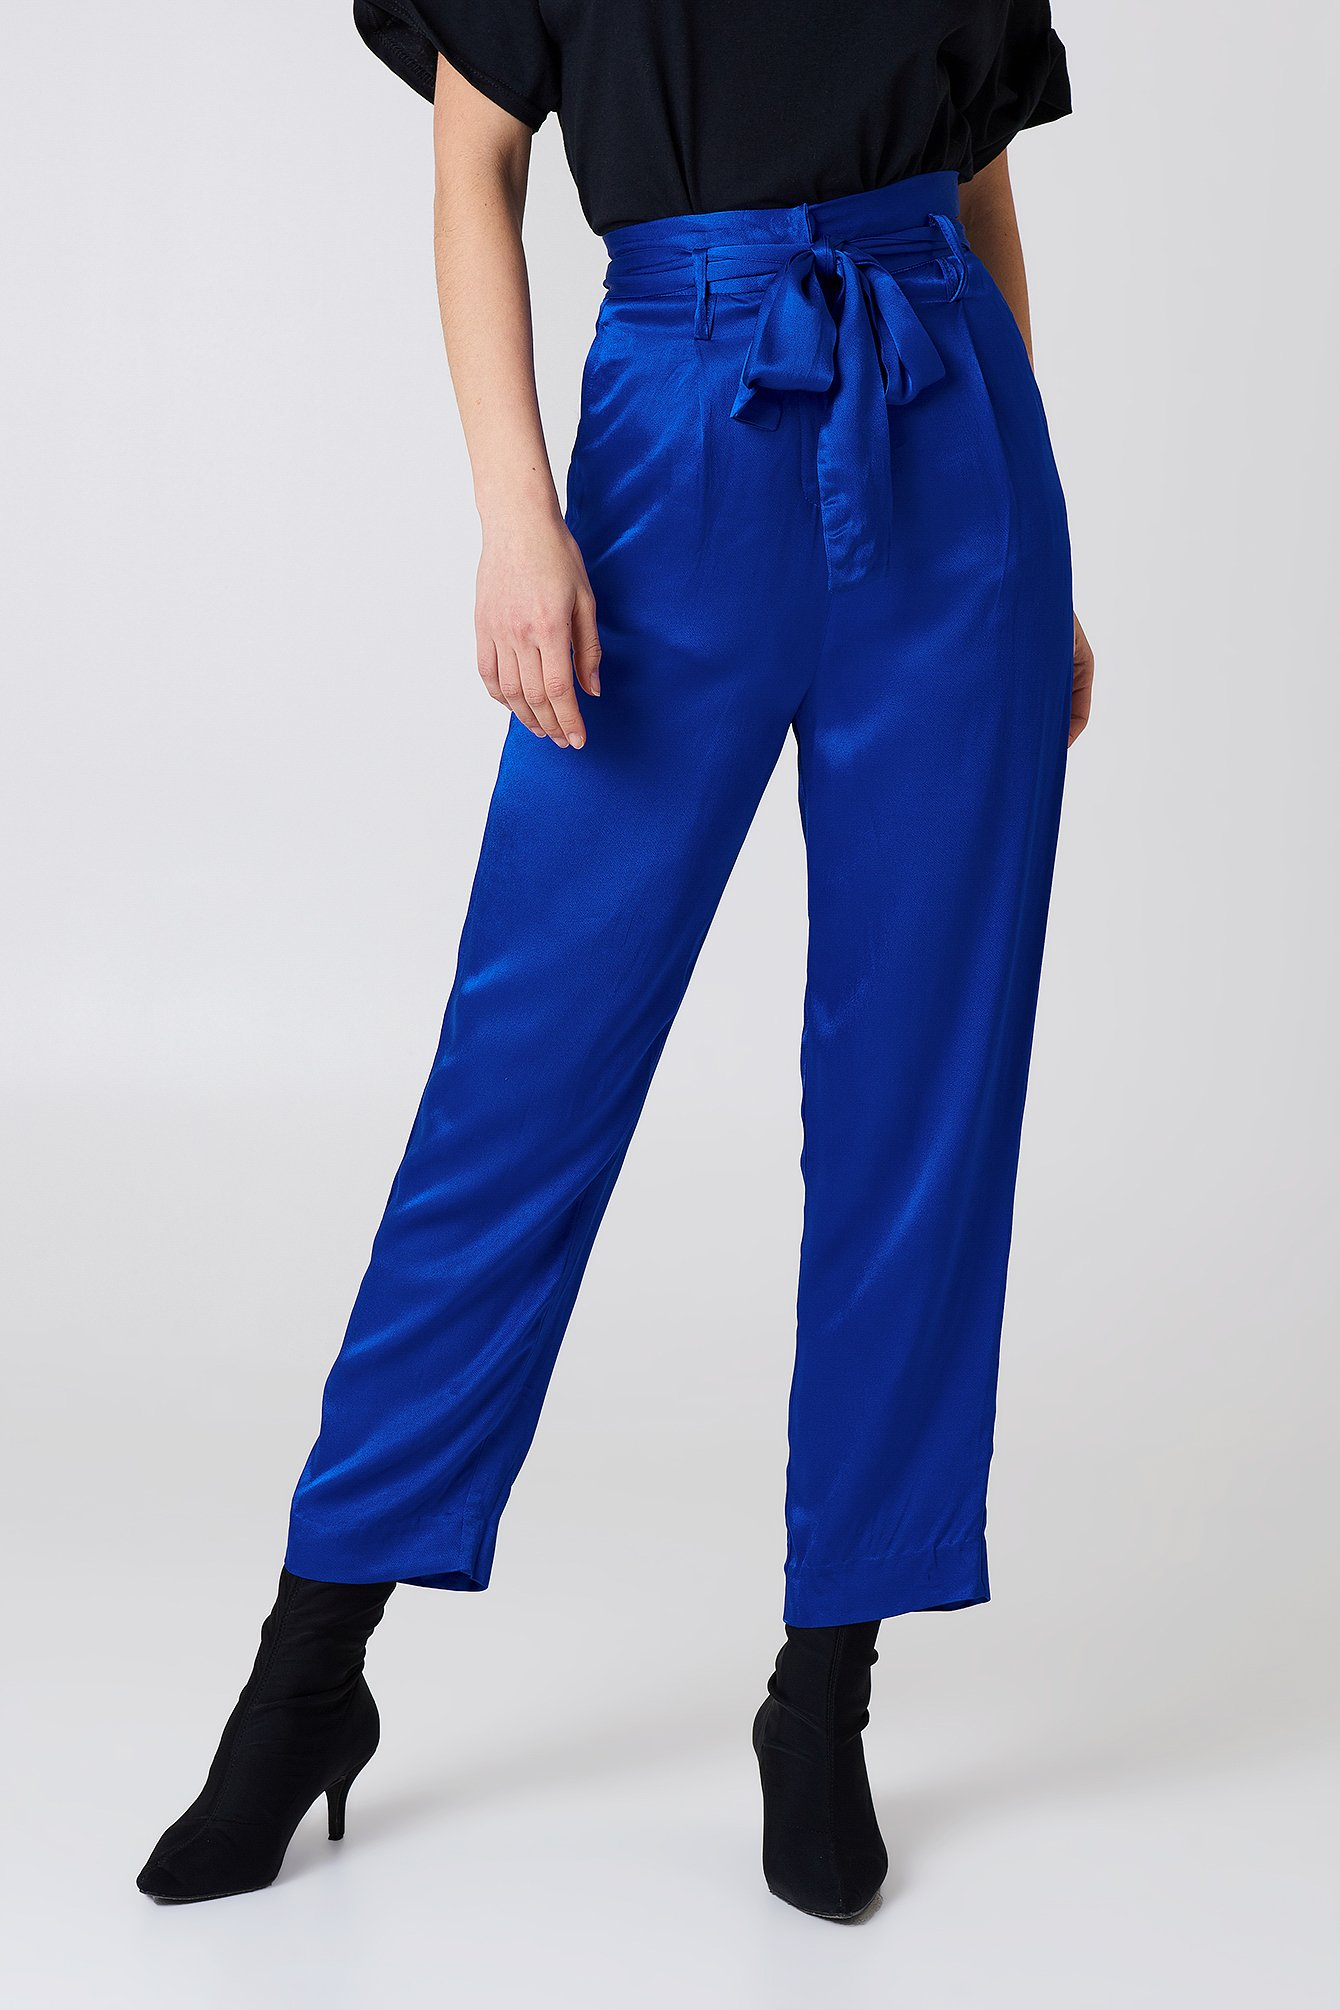 Tied Waist Satin Pants NA-KD.COM